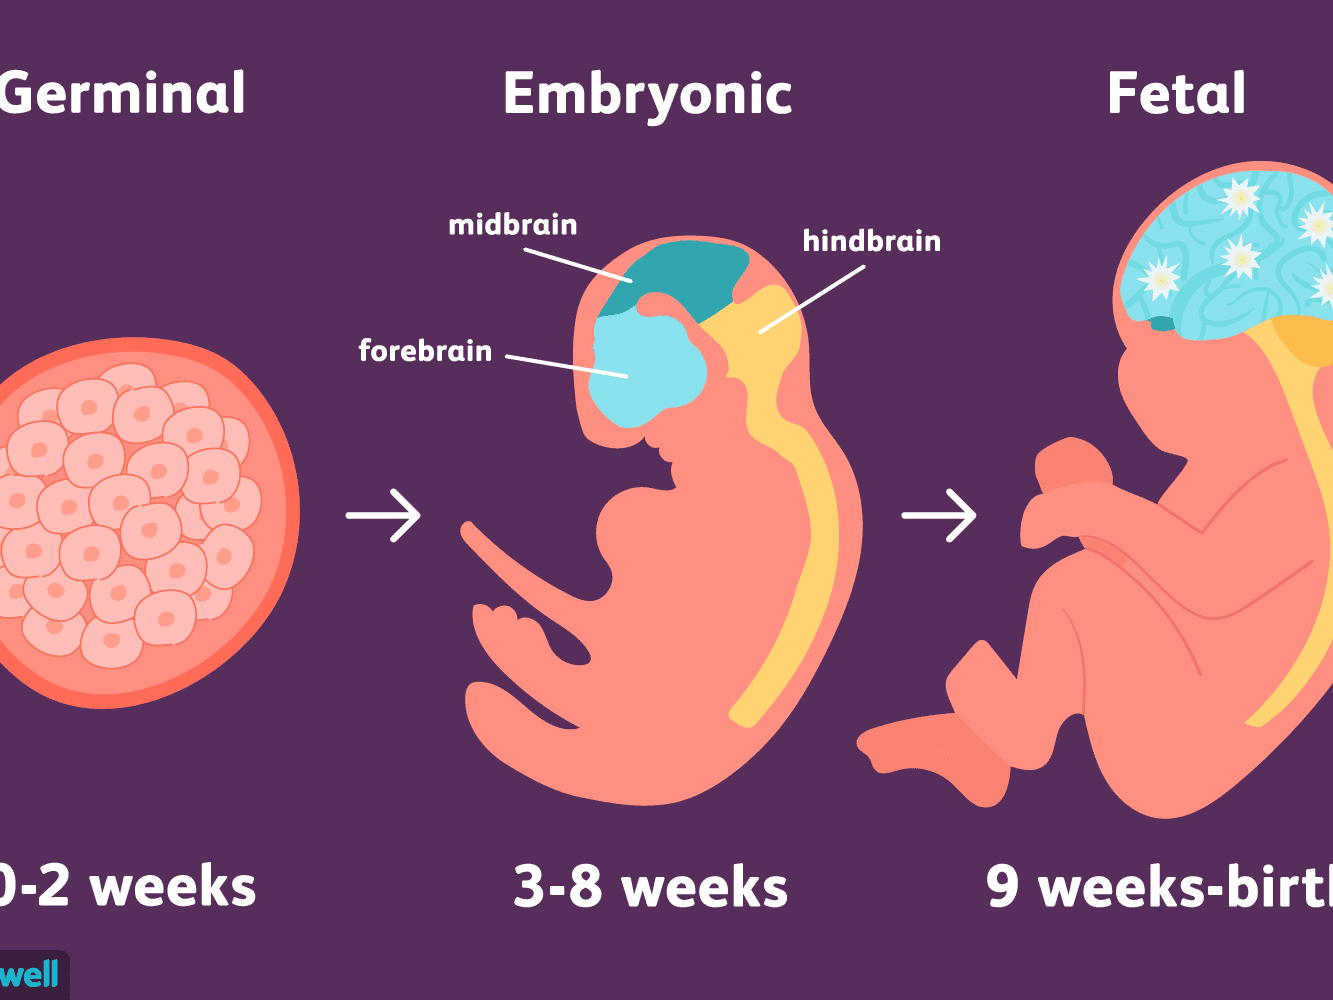 Fetal Development (from: https://www.verywellmind.com/stages-of-prenatal-development-2795073)